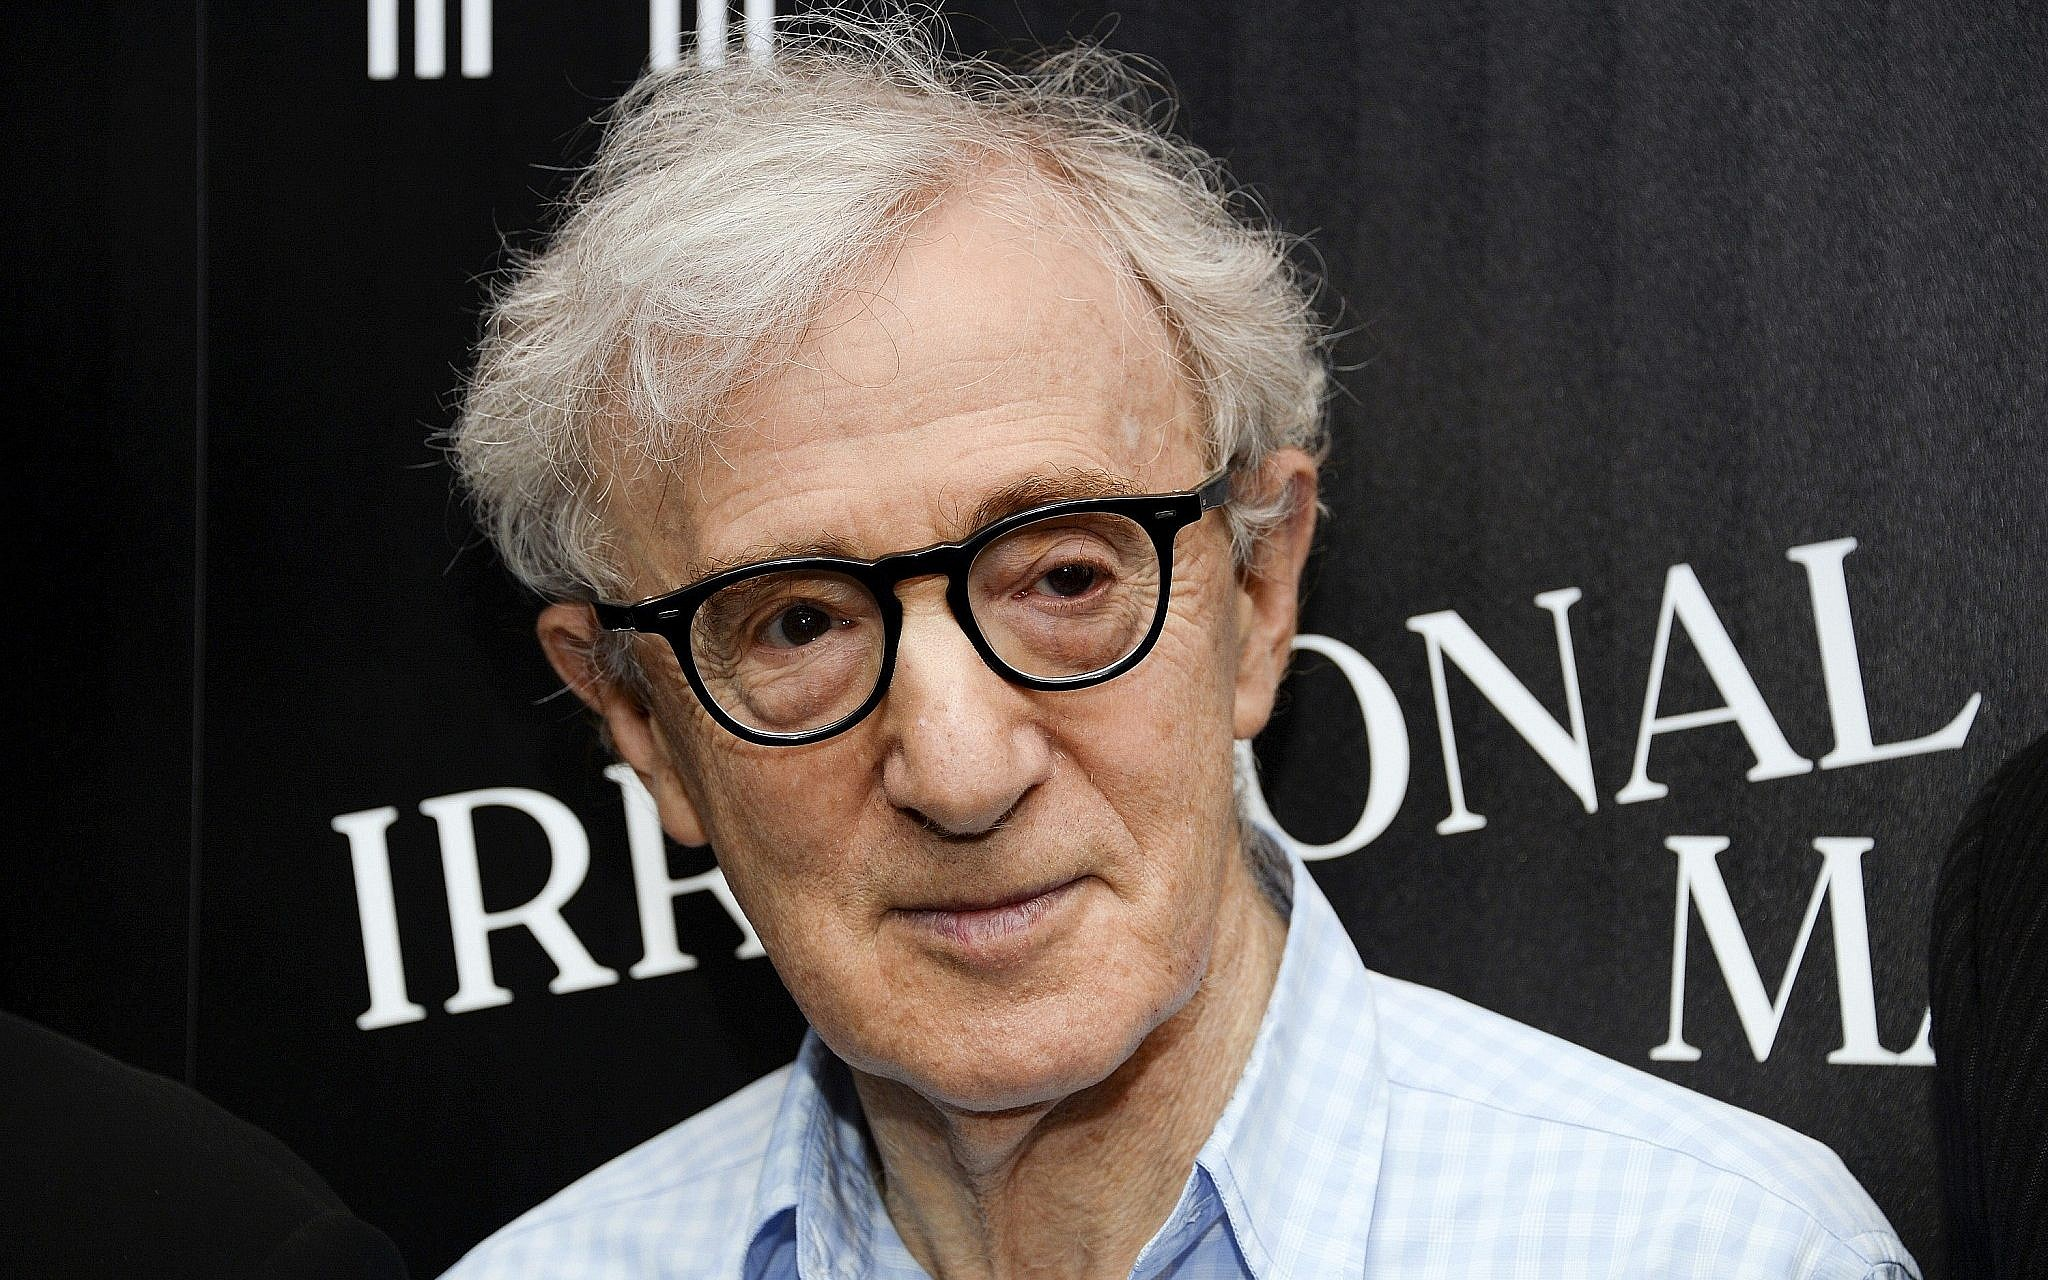 Woody Allen rejected accusations of violence by his adopted daughter 03.02.2014 83